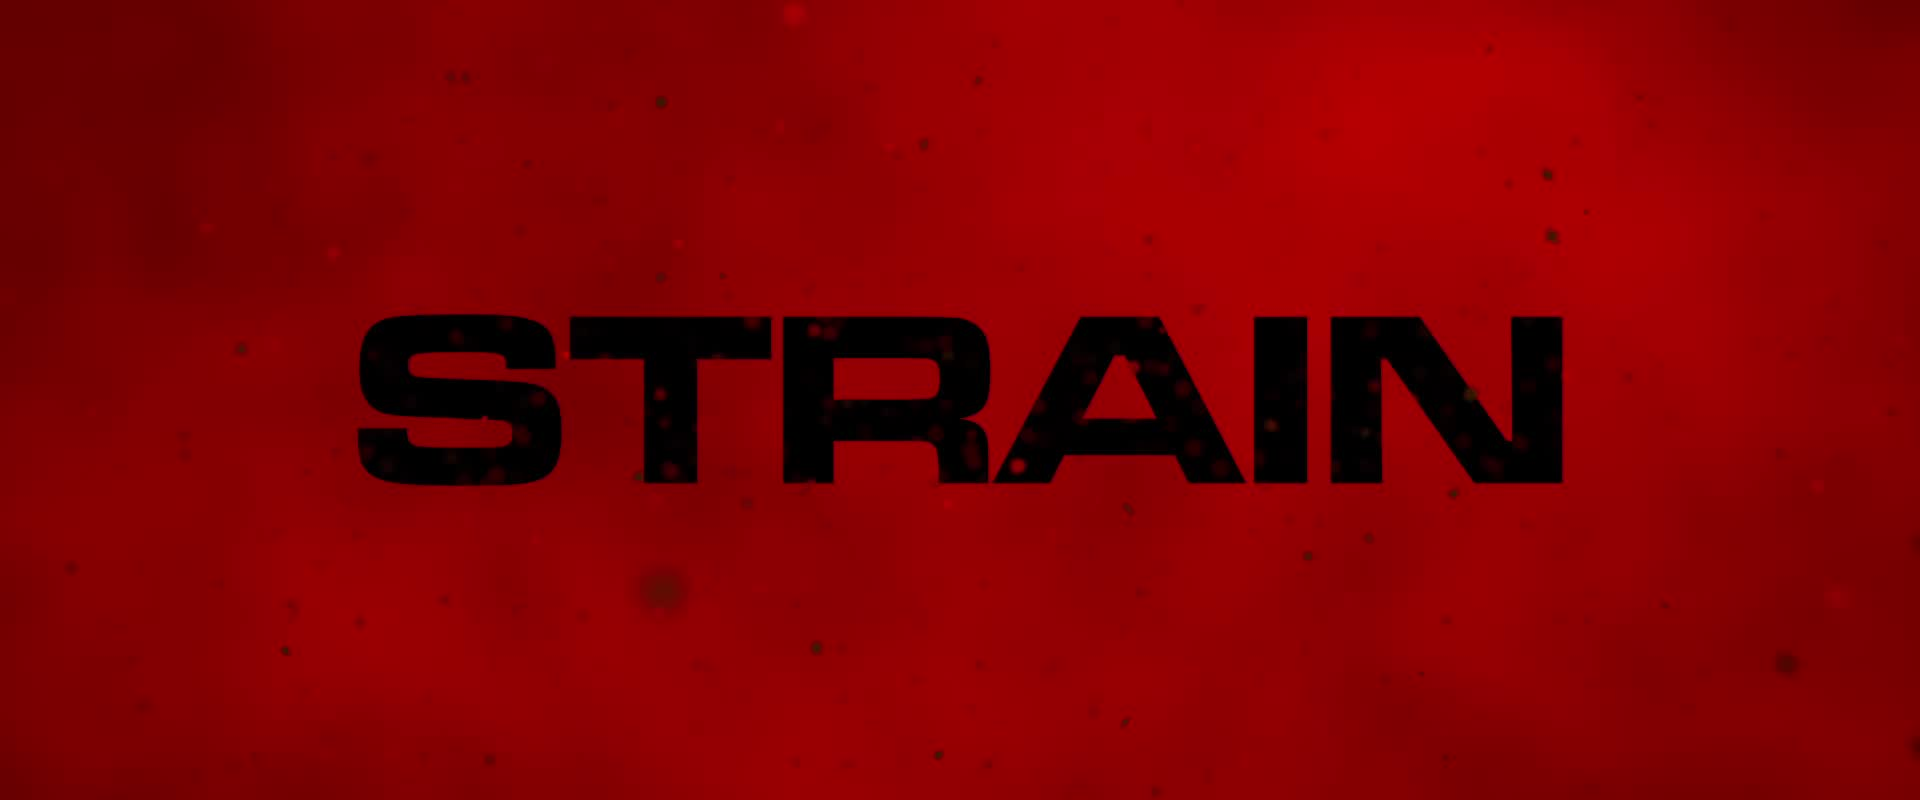 Strain full movie in hindi free download hd 1080p